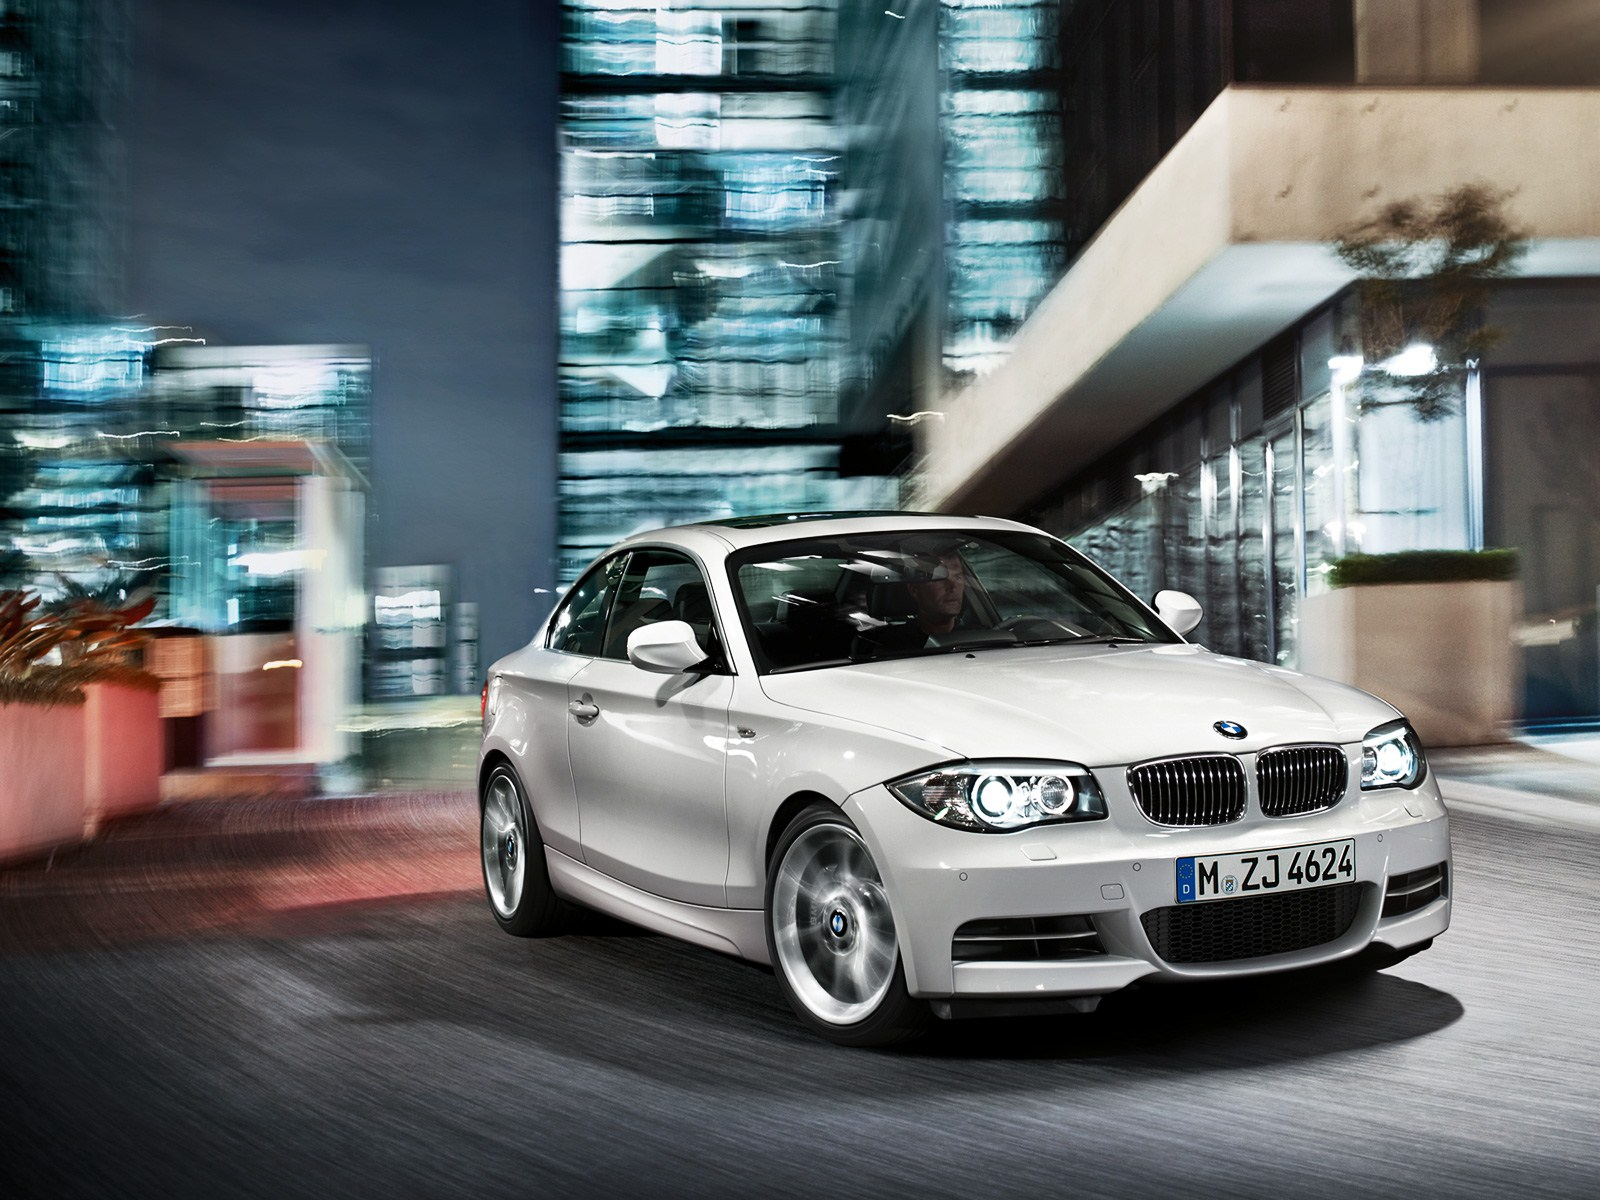 bmw 1er coupe (e82) 2015 models #1